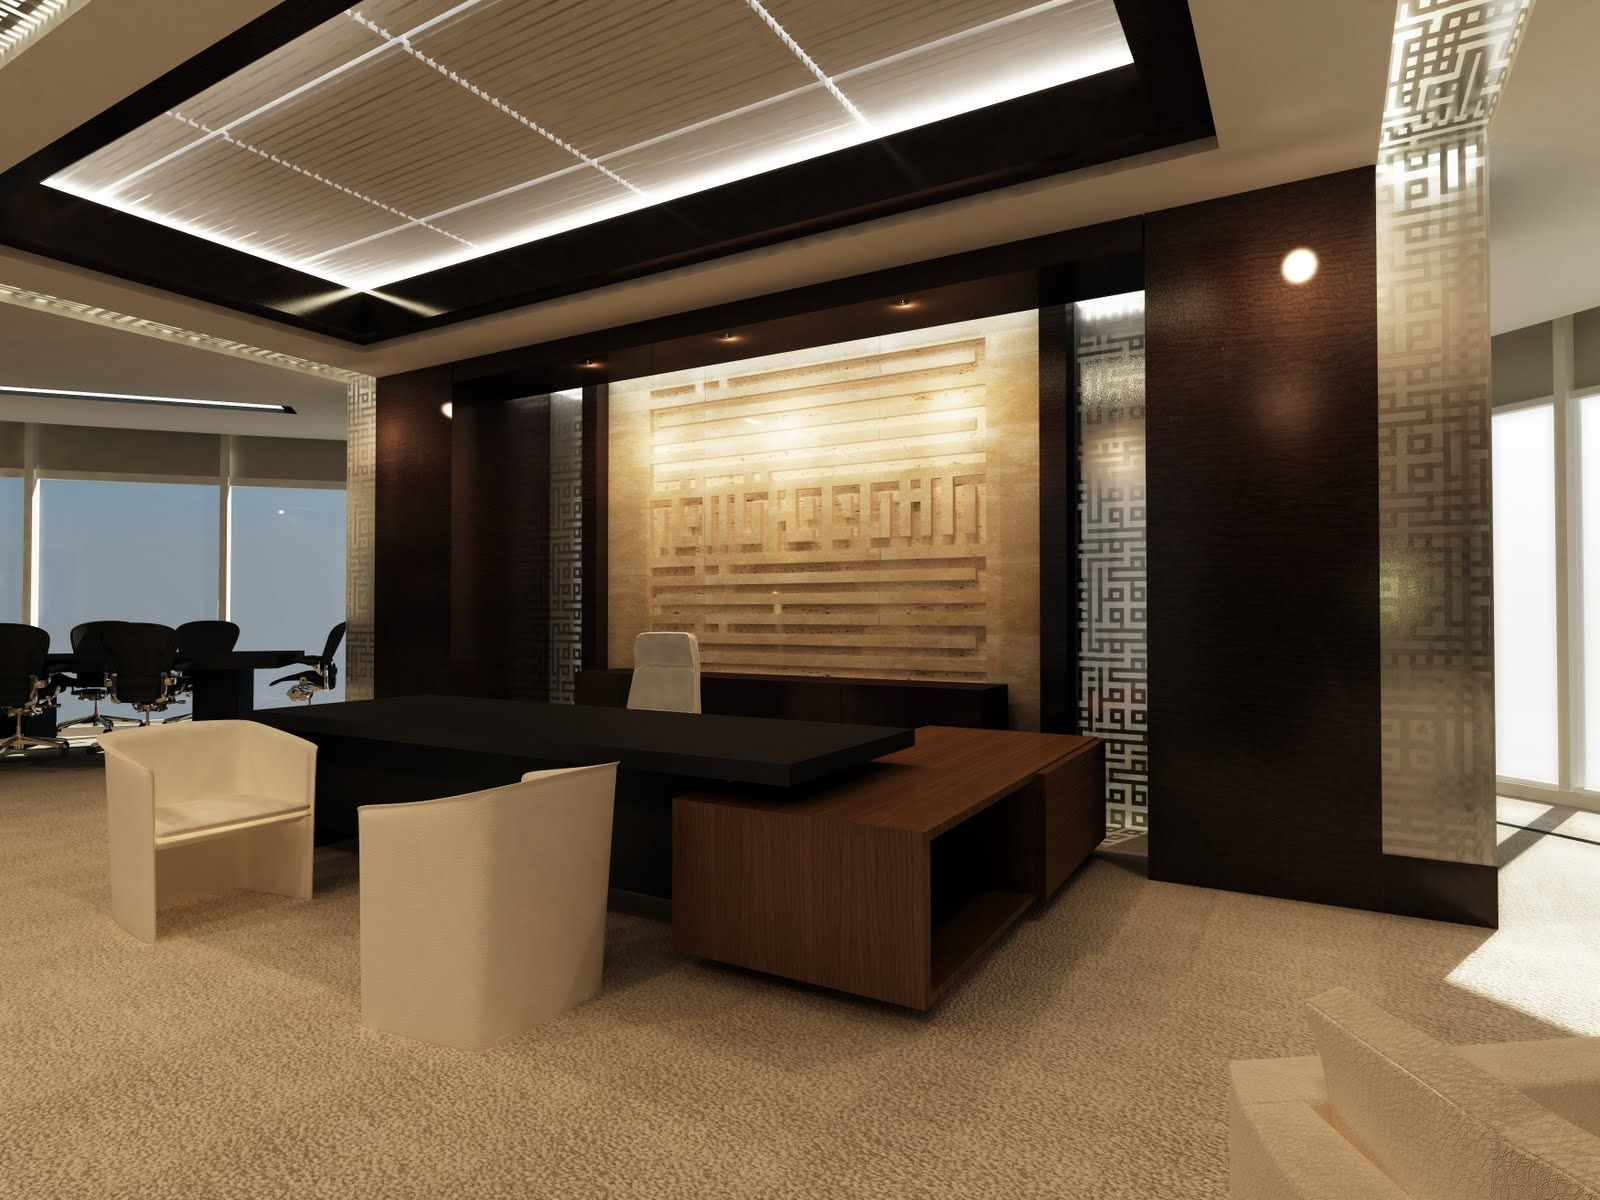 Office Interior Design Intended For Office Interior Design ...